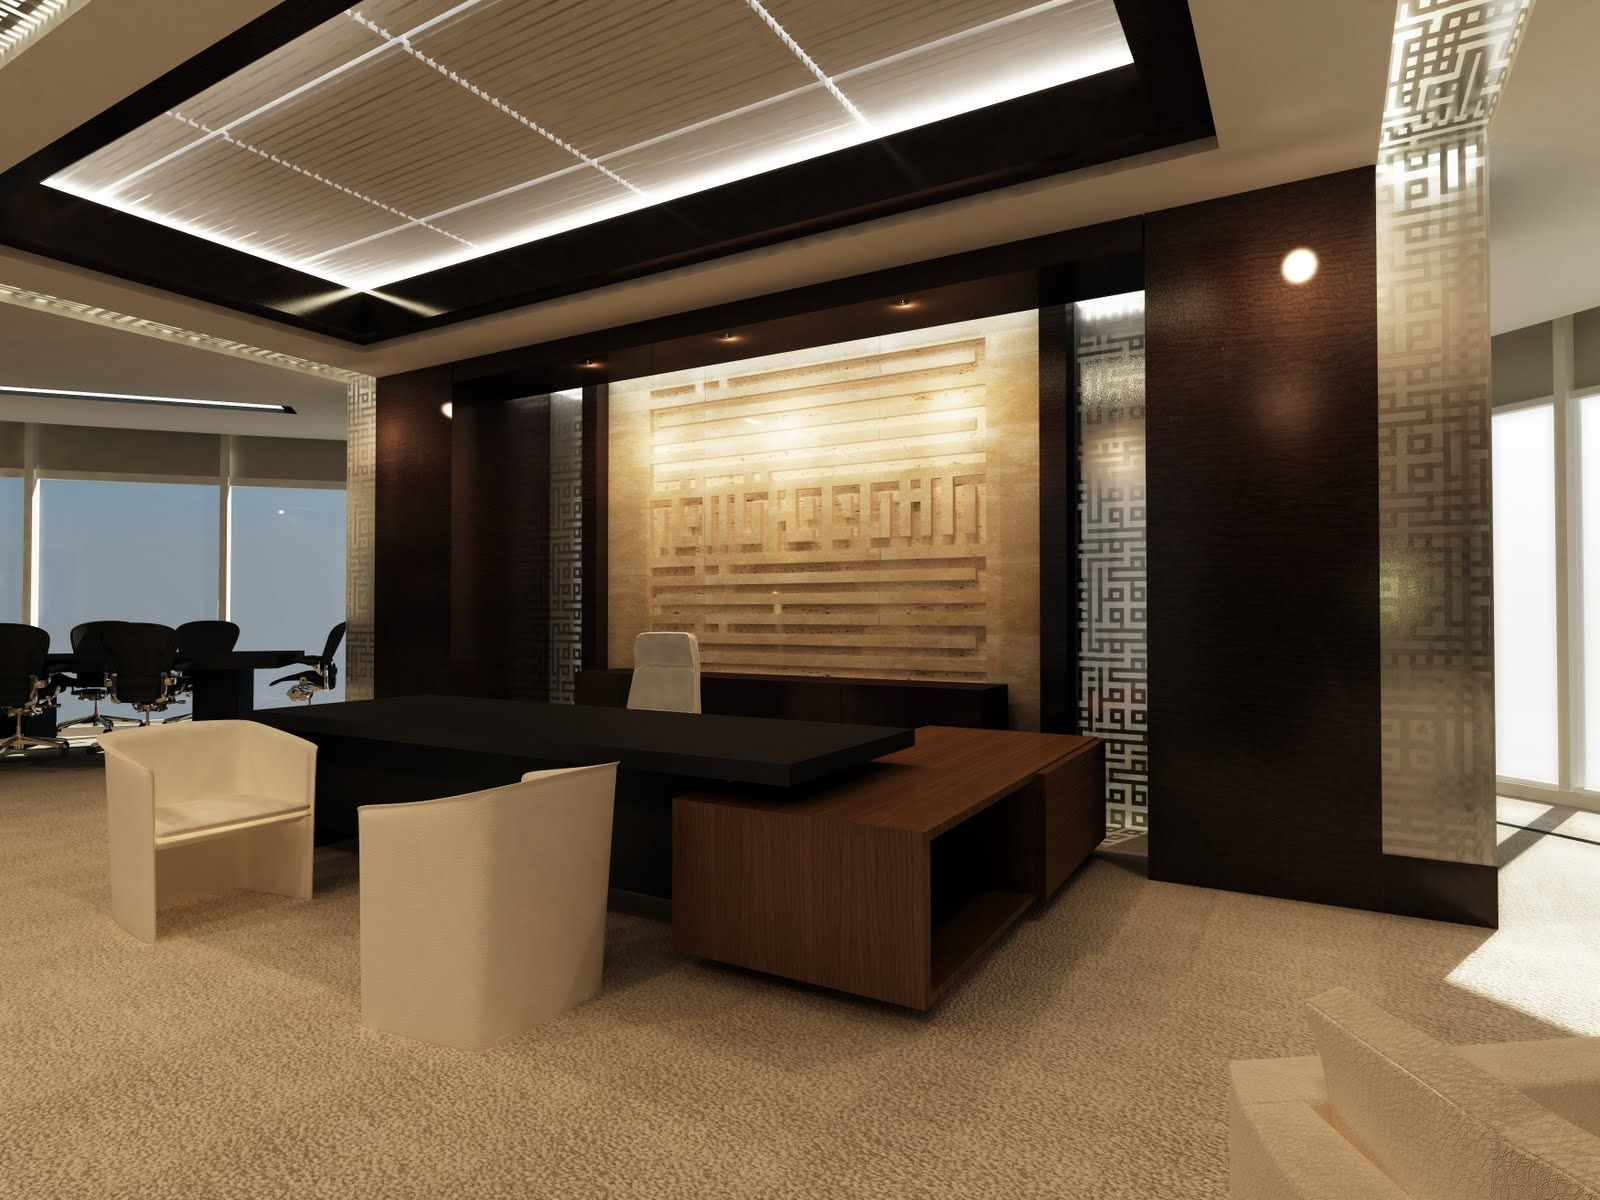 Office Interior Design Intended For Office Interior Design ...